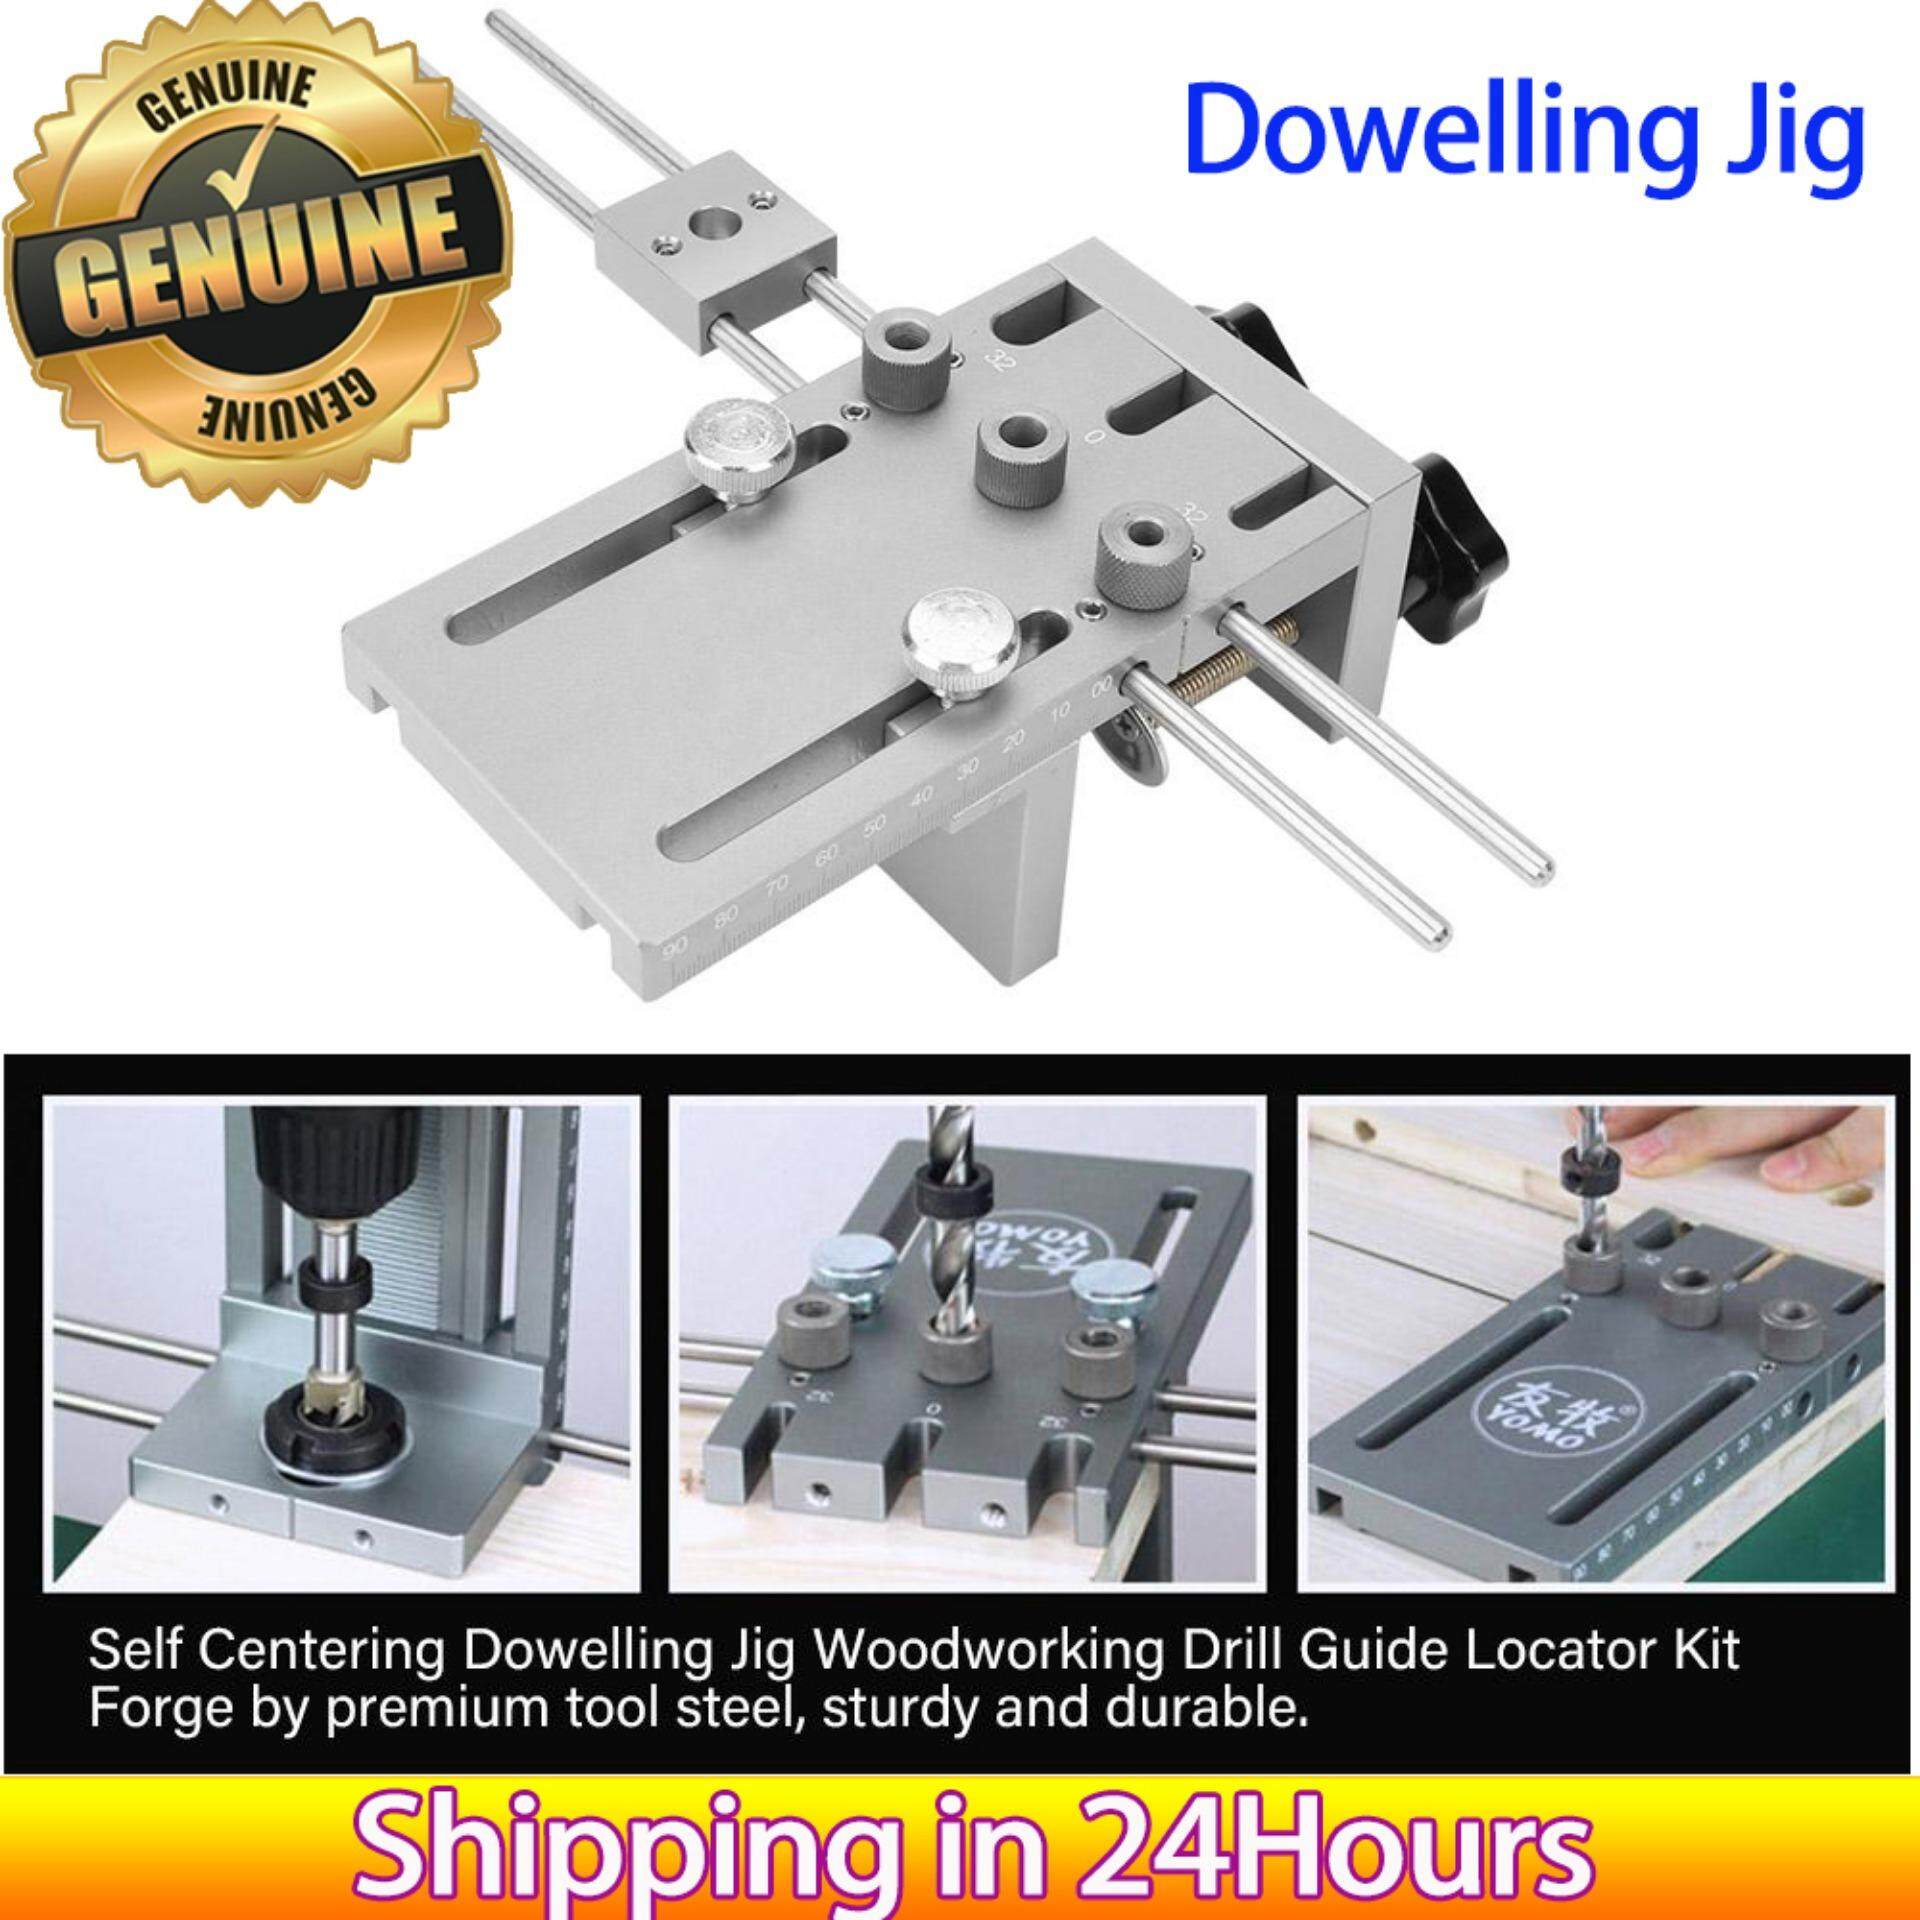 【Made in Italy 】3 in 1 6/8/10/15mm Woodworking Self Centering Dowelling Jig Drill Guide Locator Kit